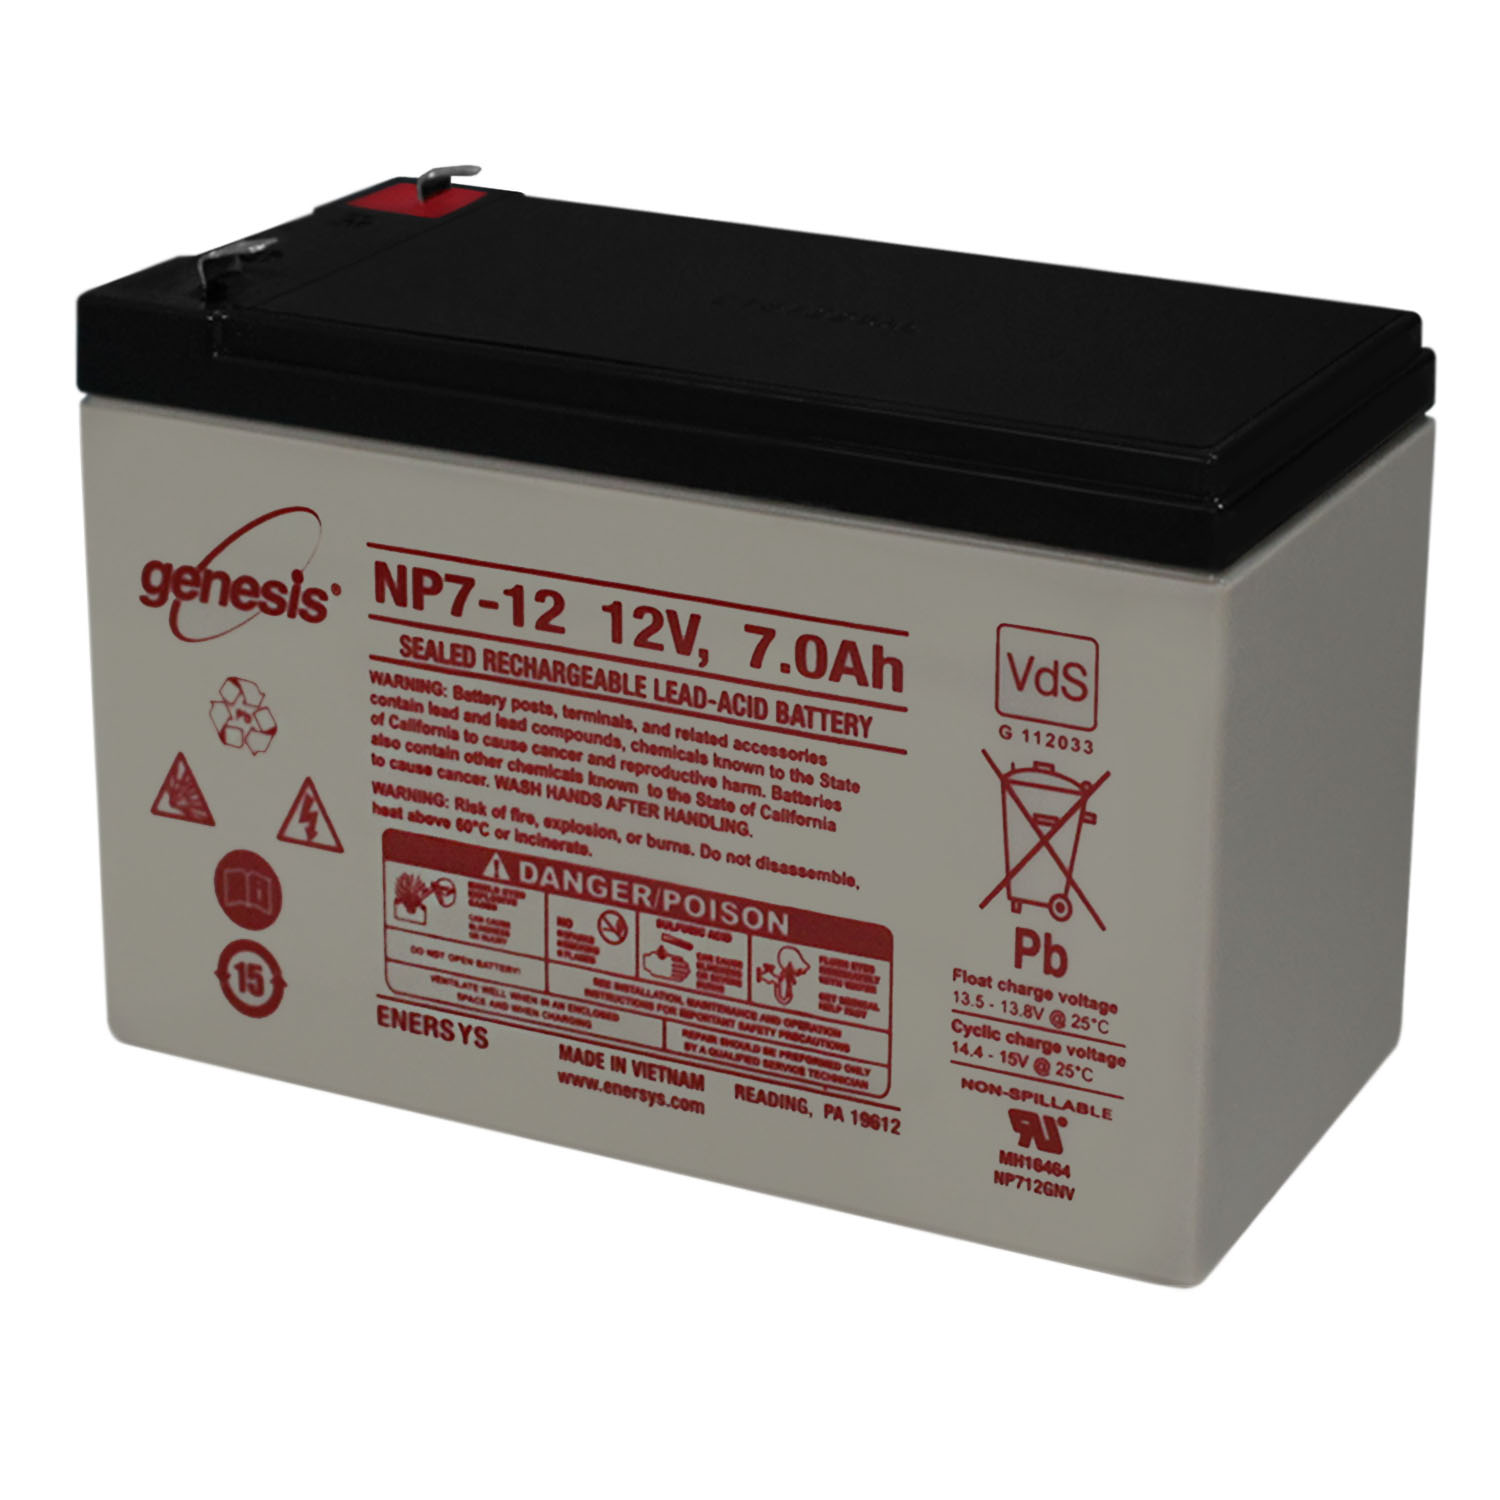 Genesis 12V 7Ah Battery Replacement for Hitachi HP7-12